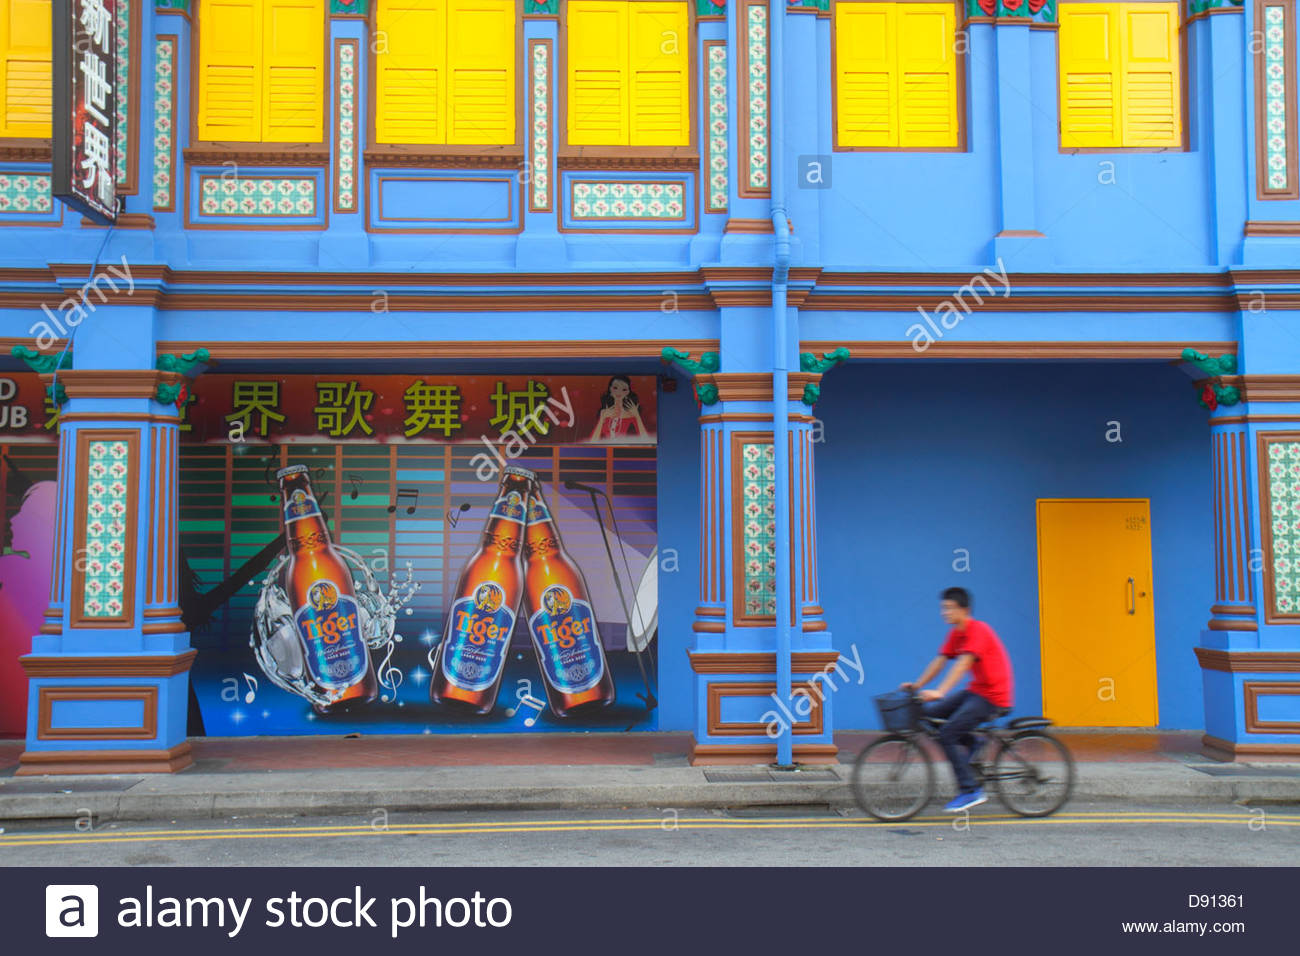 Singapore Little India Jalan Besar street scene building Asian teen boy bicycle riding bar nightclub club Tiger Stock Photo